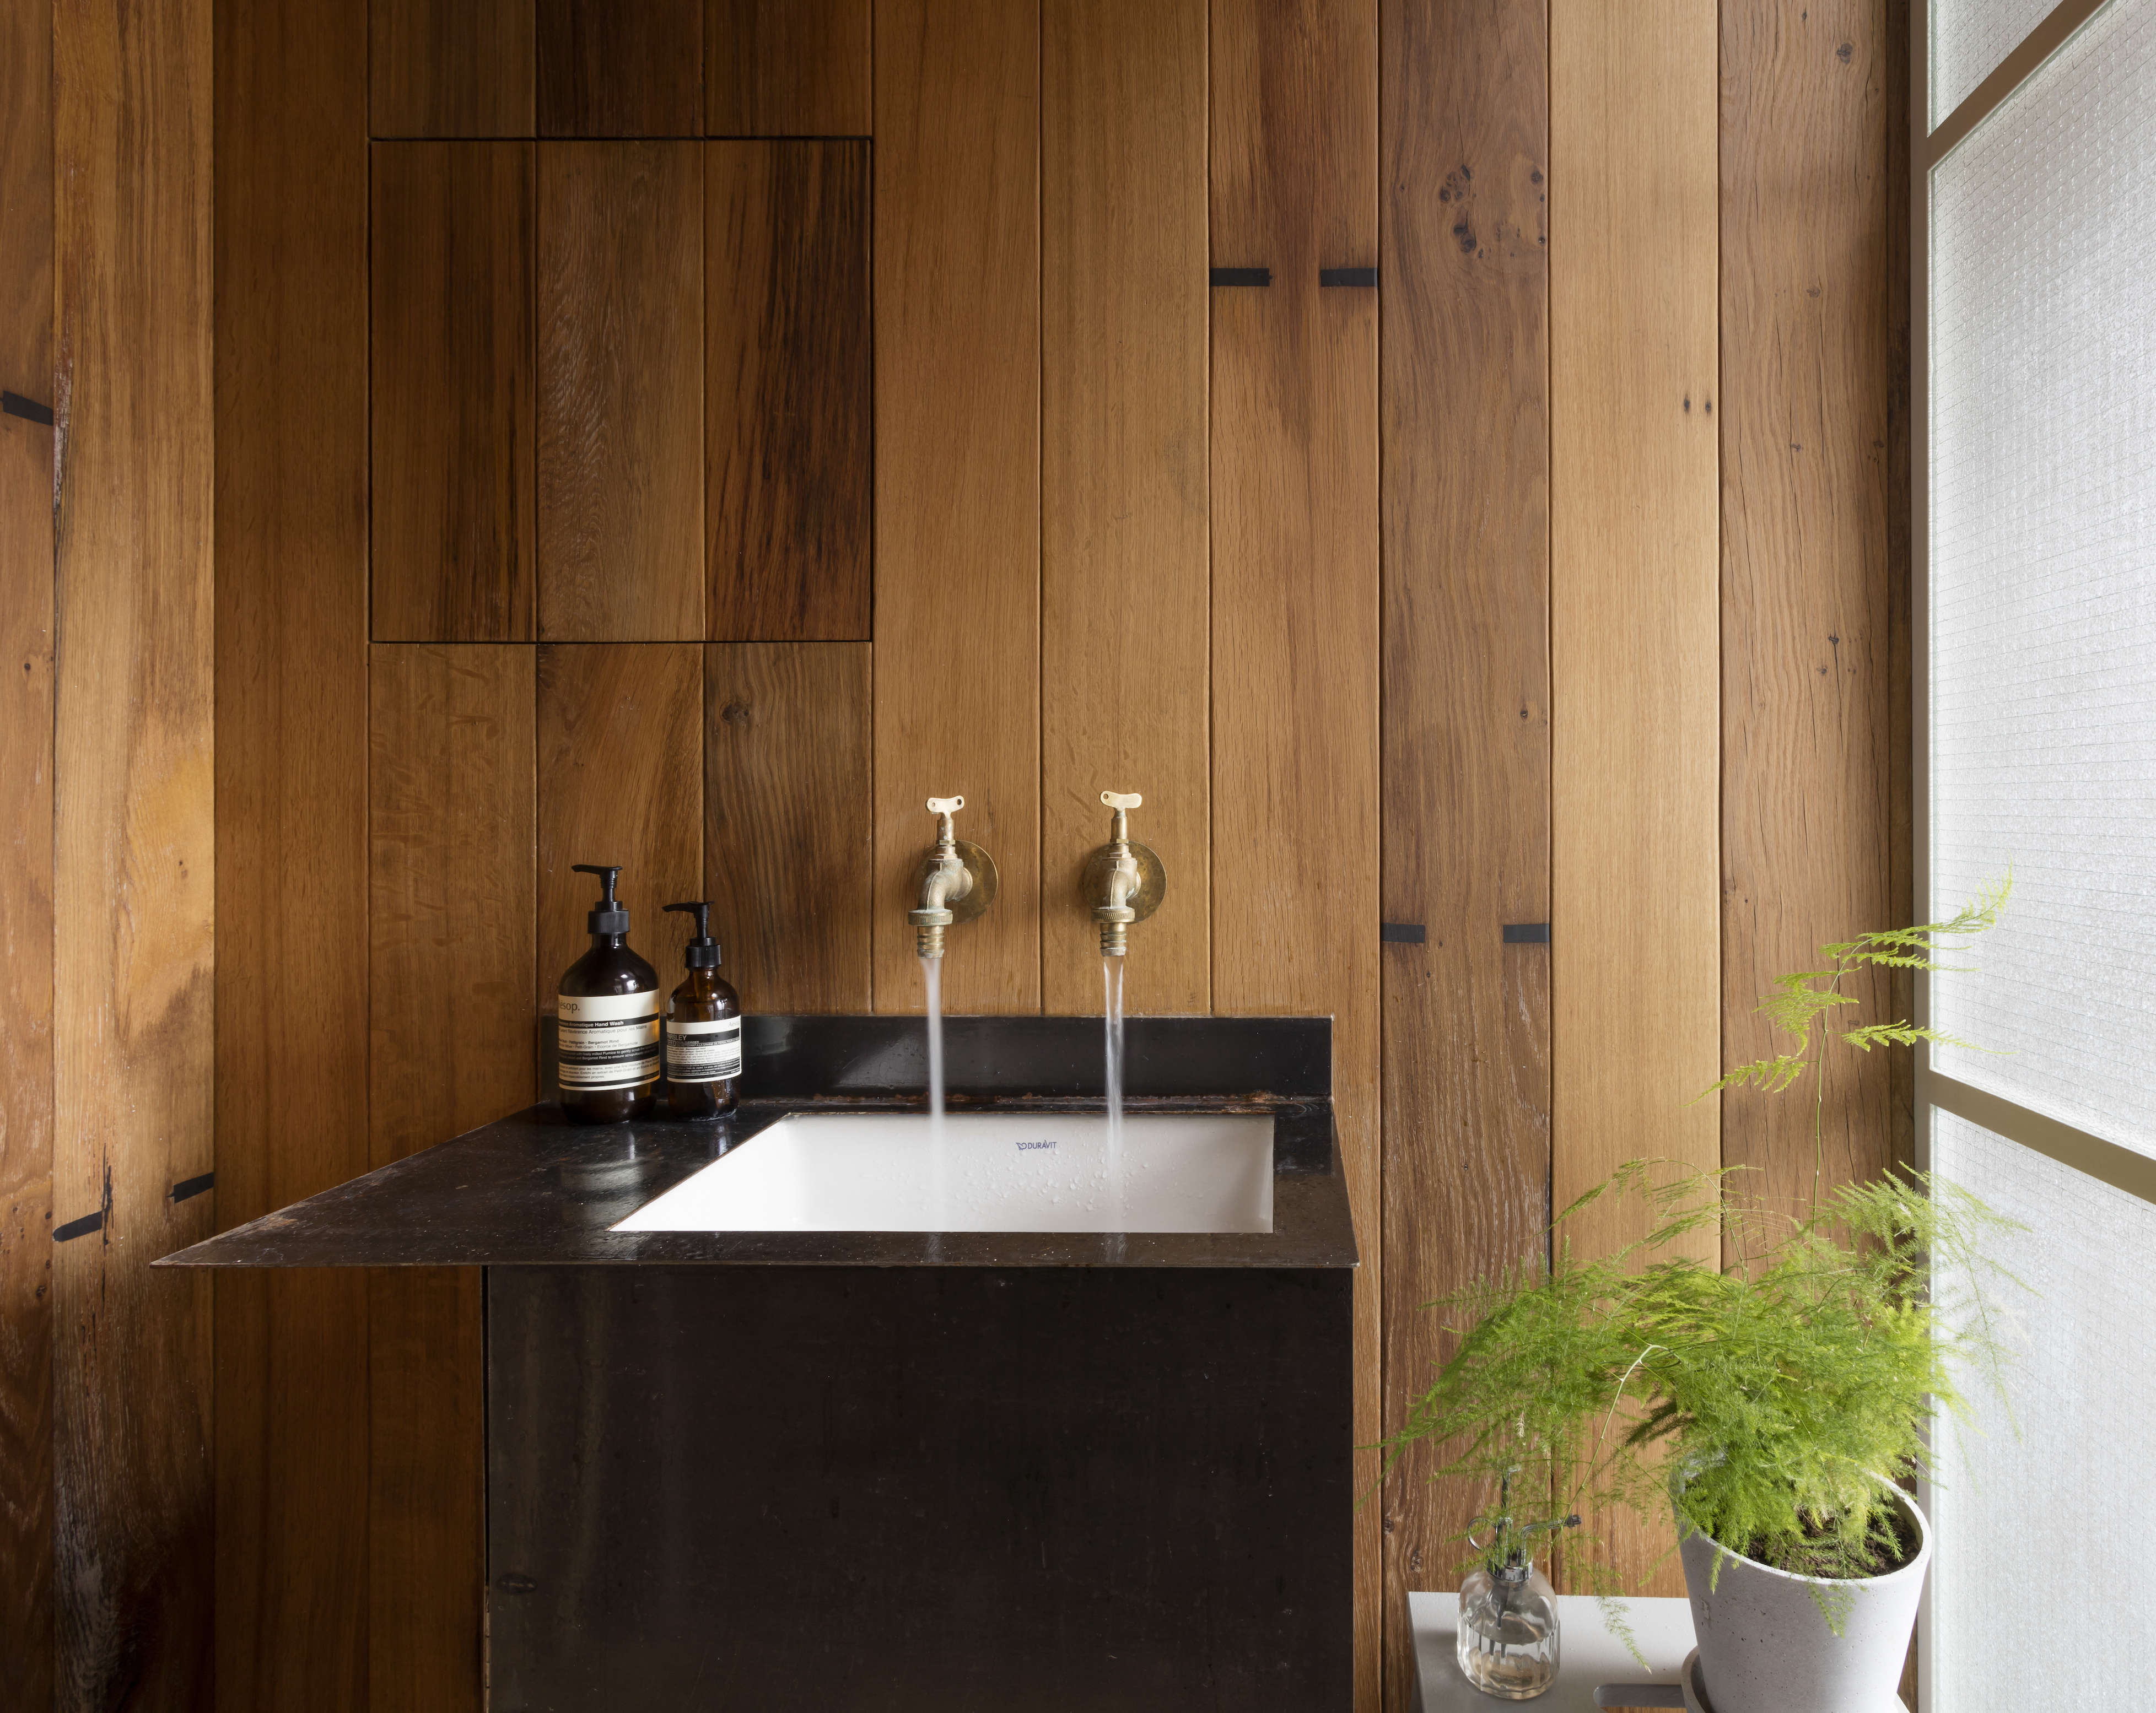 cutting home for faucet diy look sourcebook kitchen hudson stealth wilson a barber sink by valley star deborah the bloglovin blogs faucets considered remodelista design this steal ehrlich boards